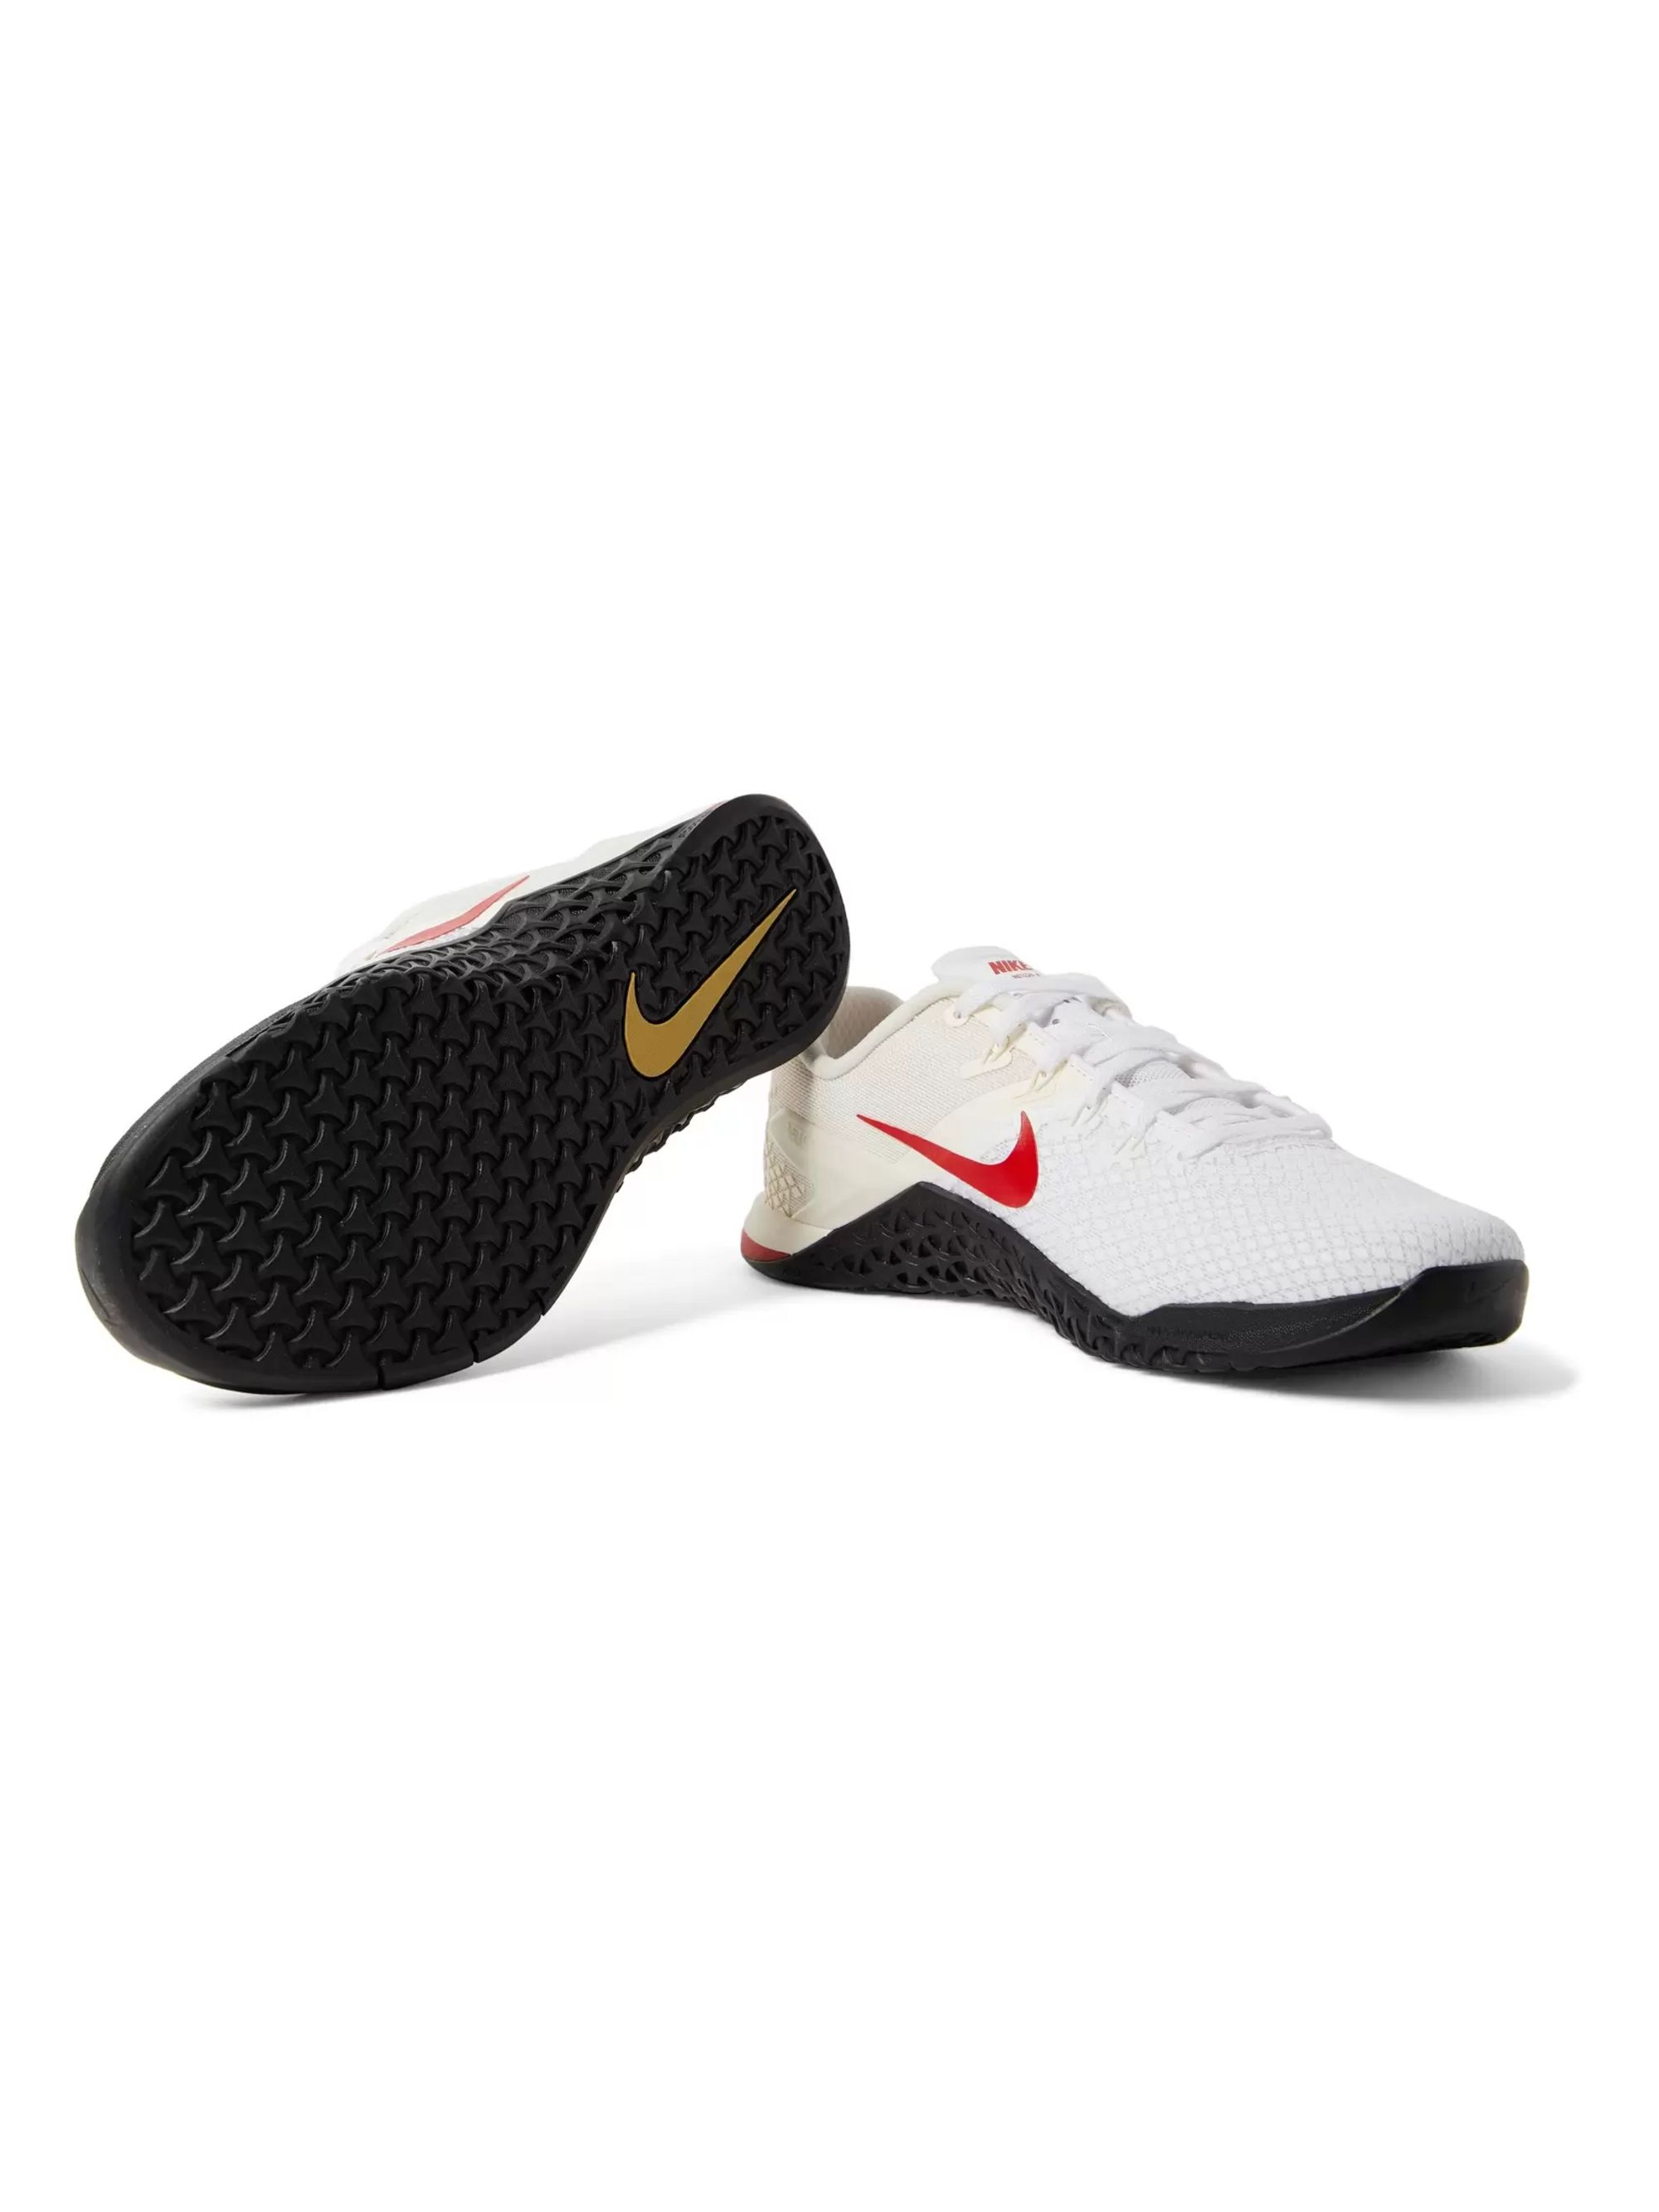 Nike Training Metcon 4 XD X Rubber-Trimmed Mesh Sneakers